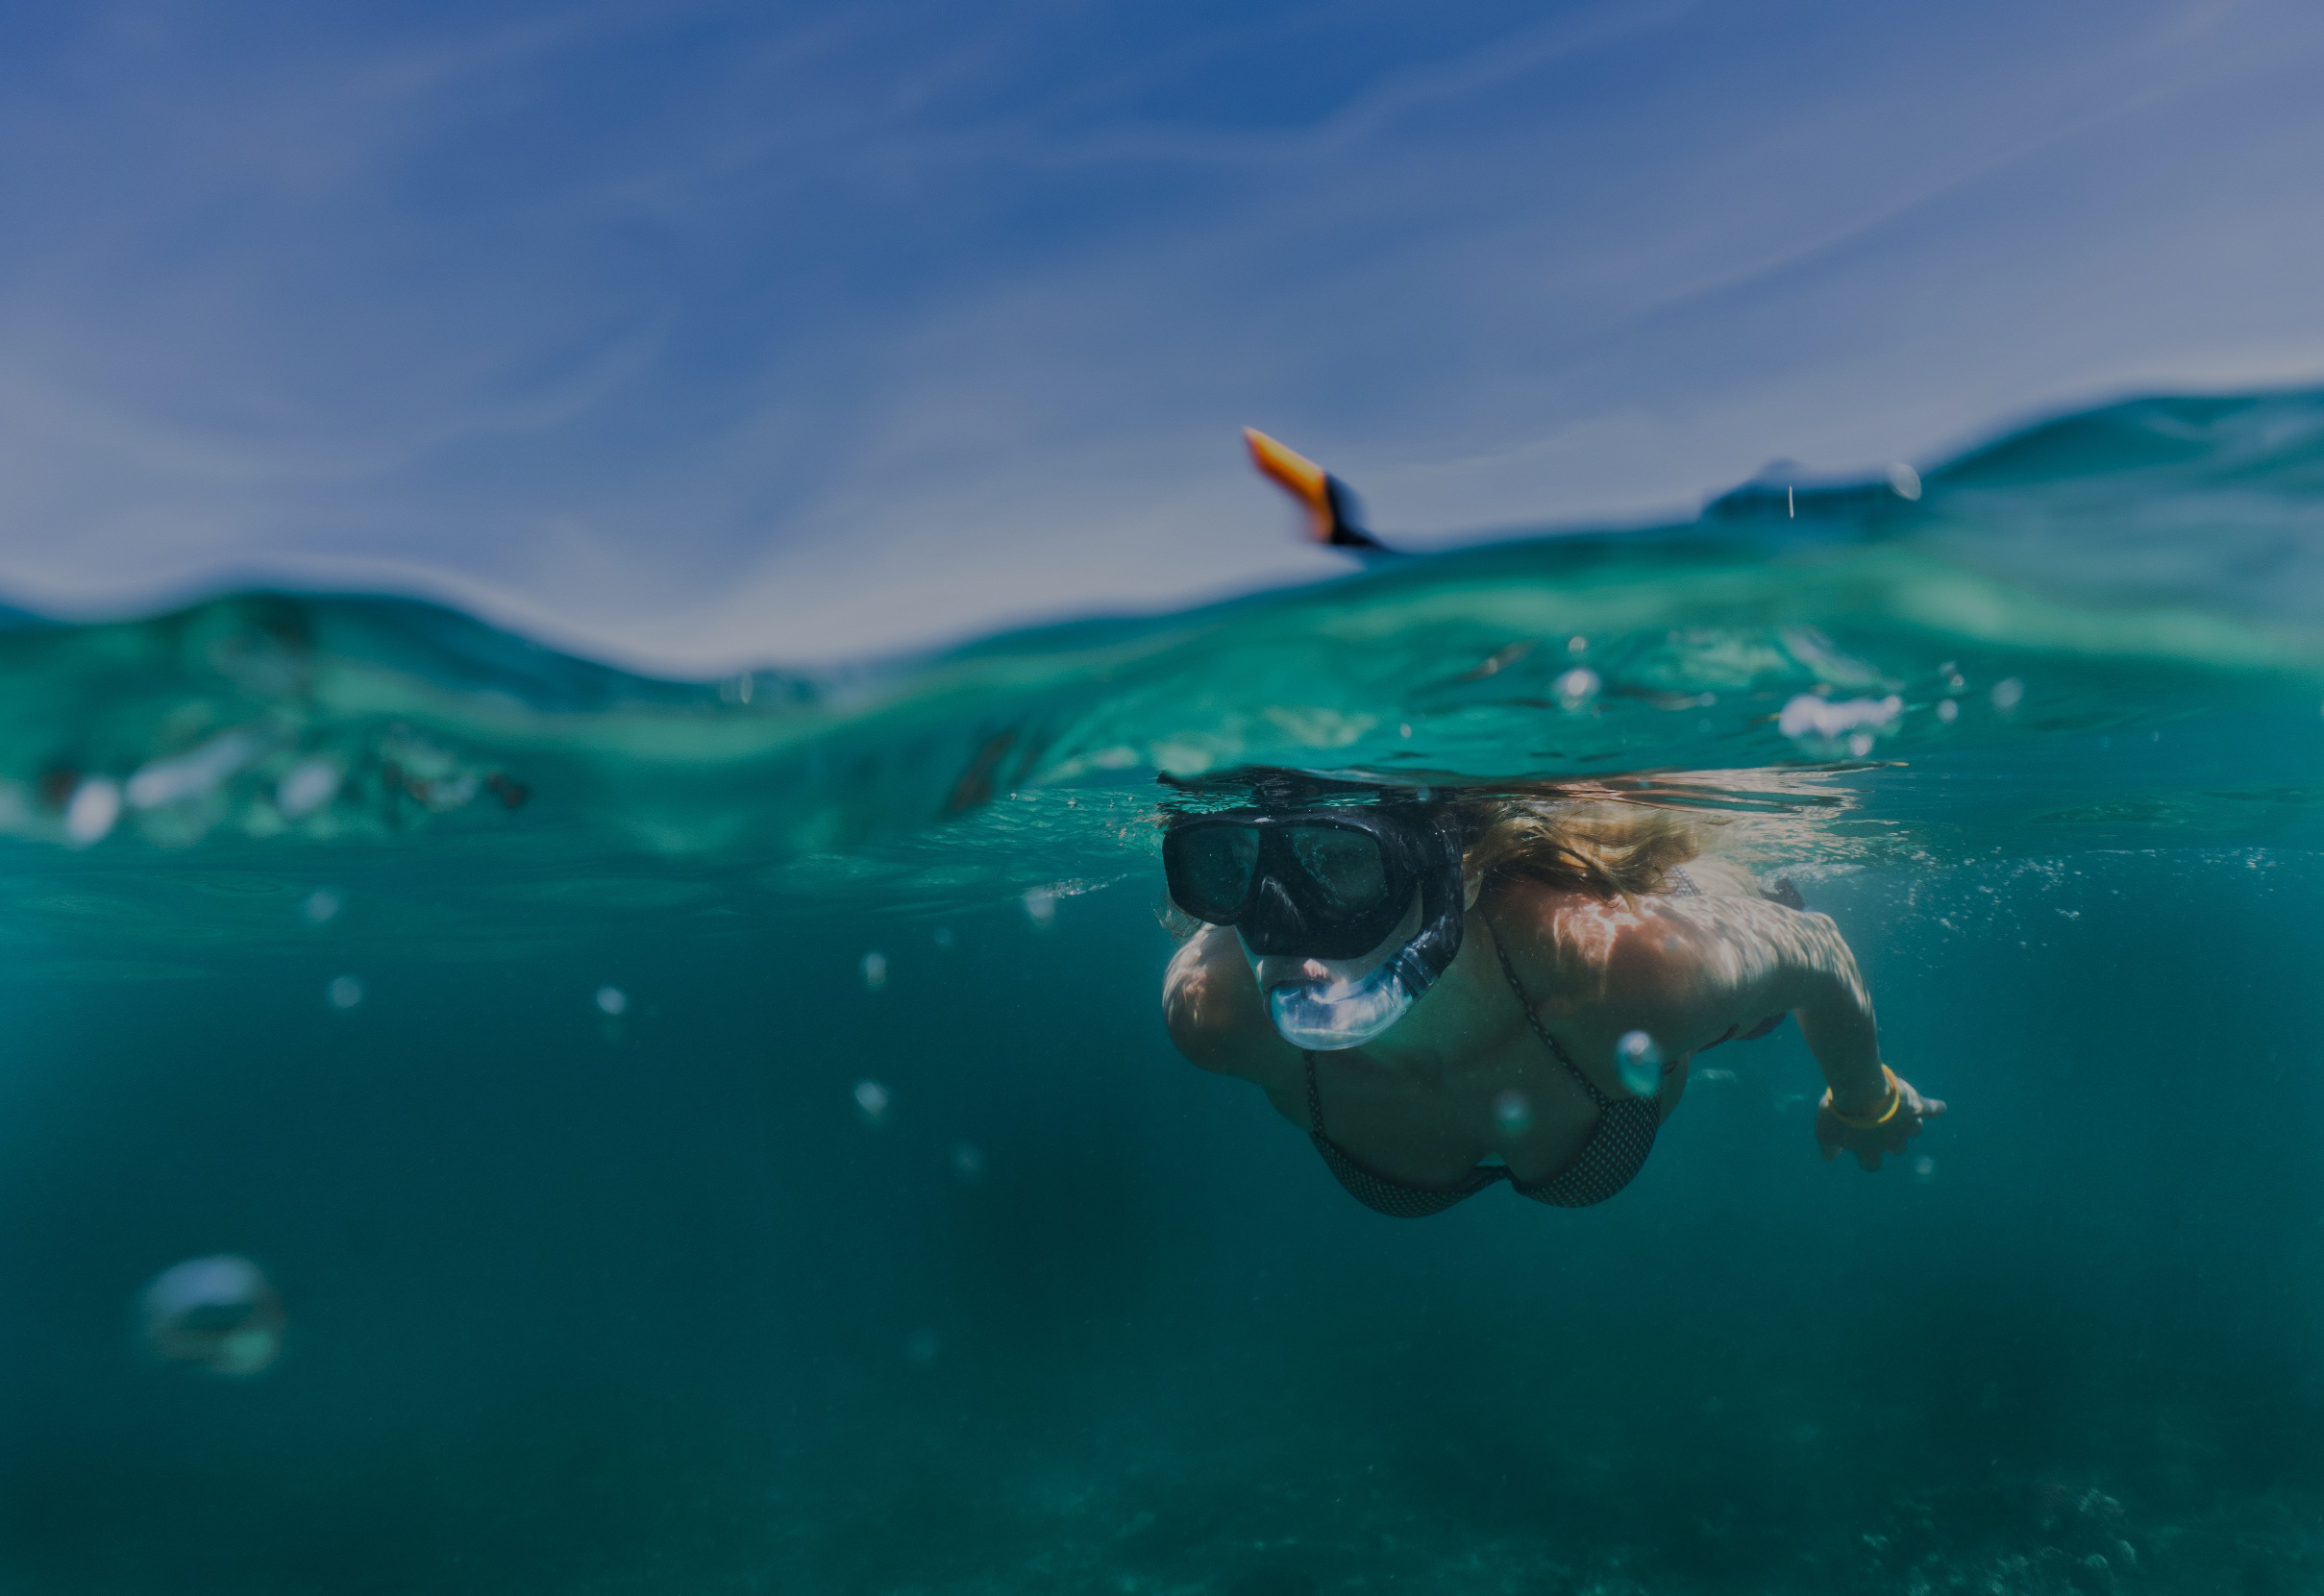 Lady snorkleing in the Florida Keys